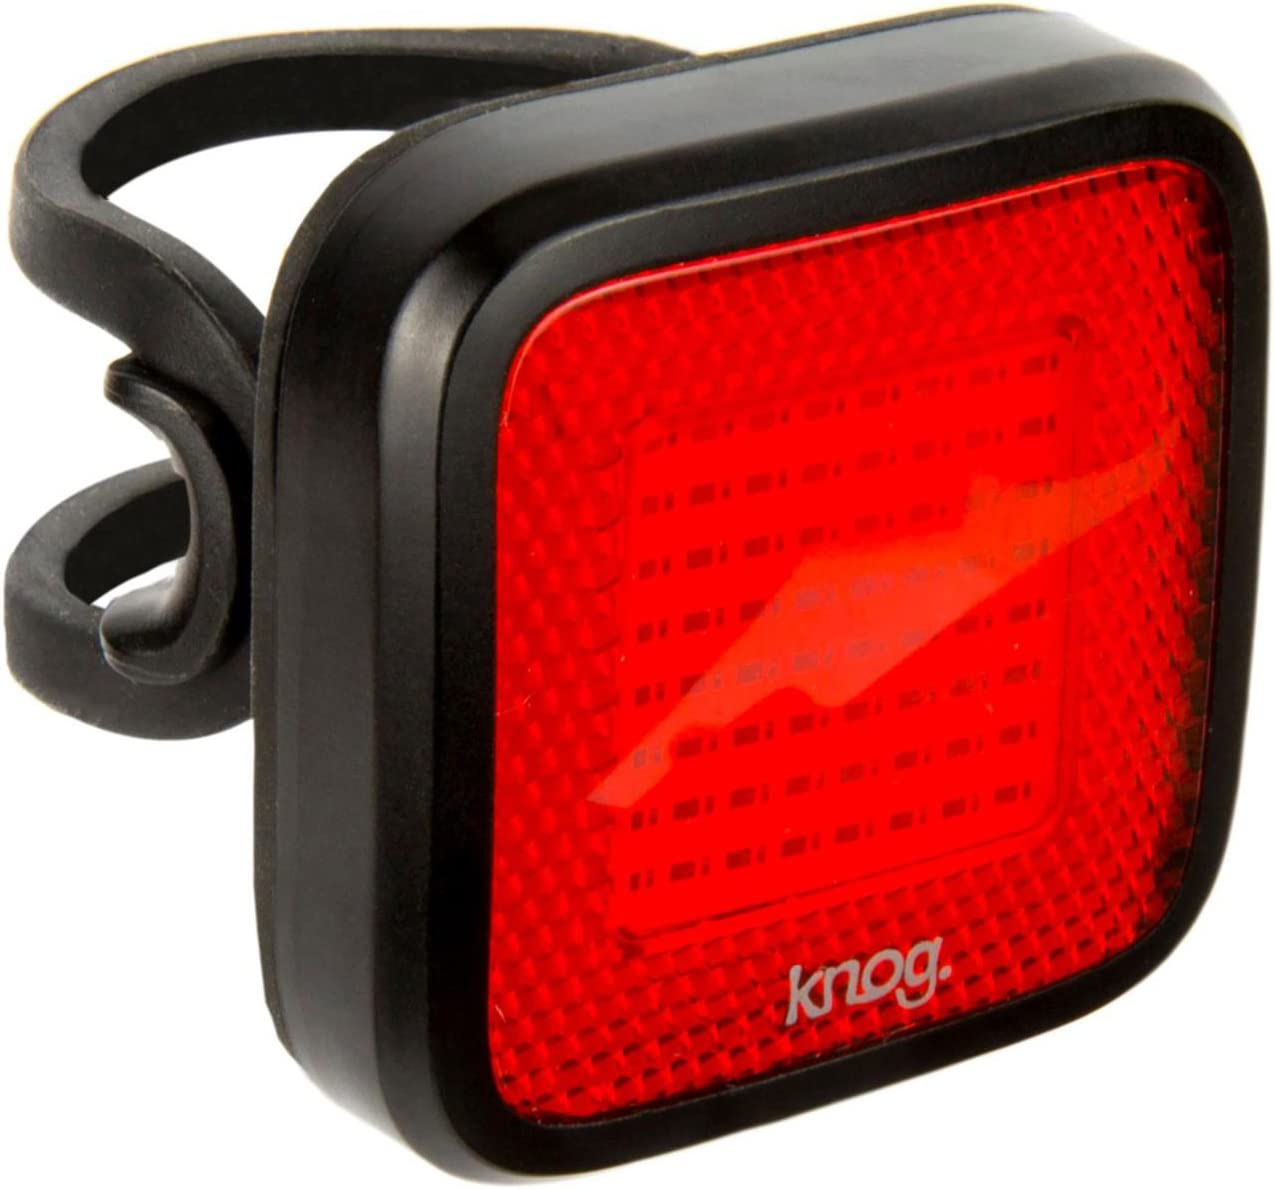 Knog Blinder Mob Mr Chips luz Trasera para Bicicleta, Color Negro ...